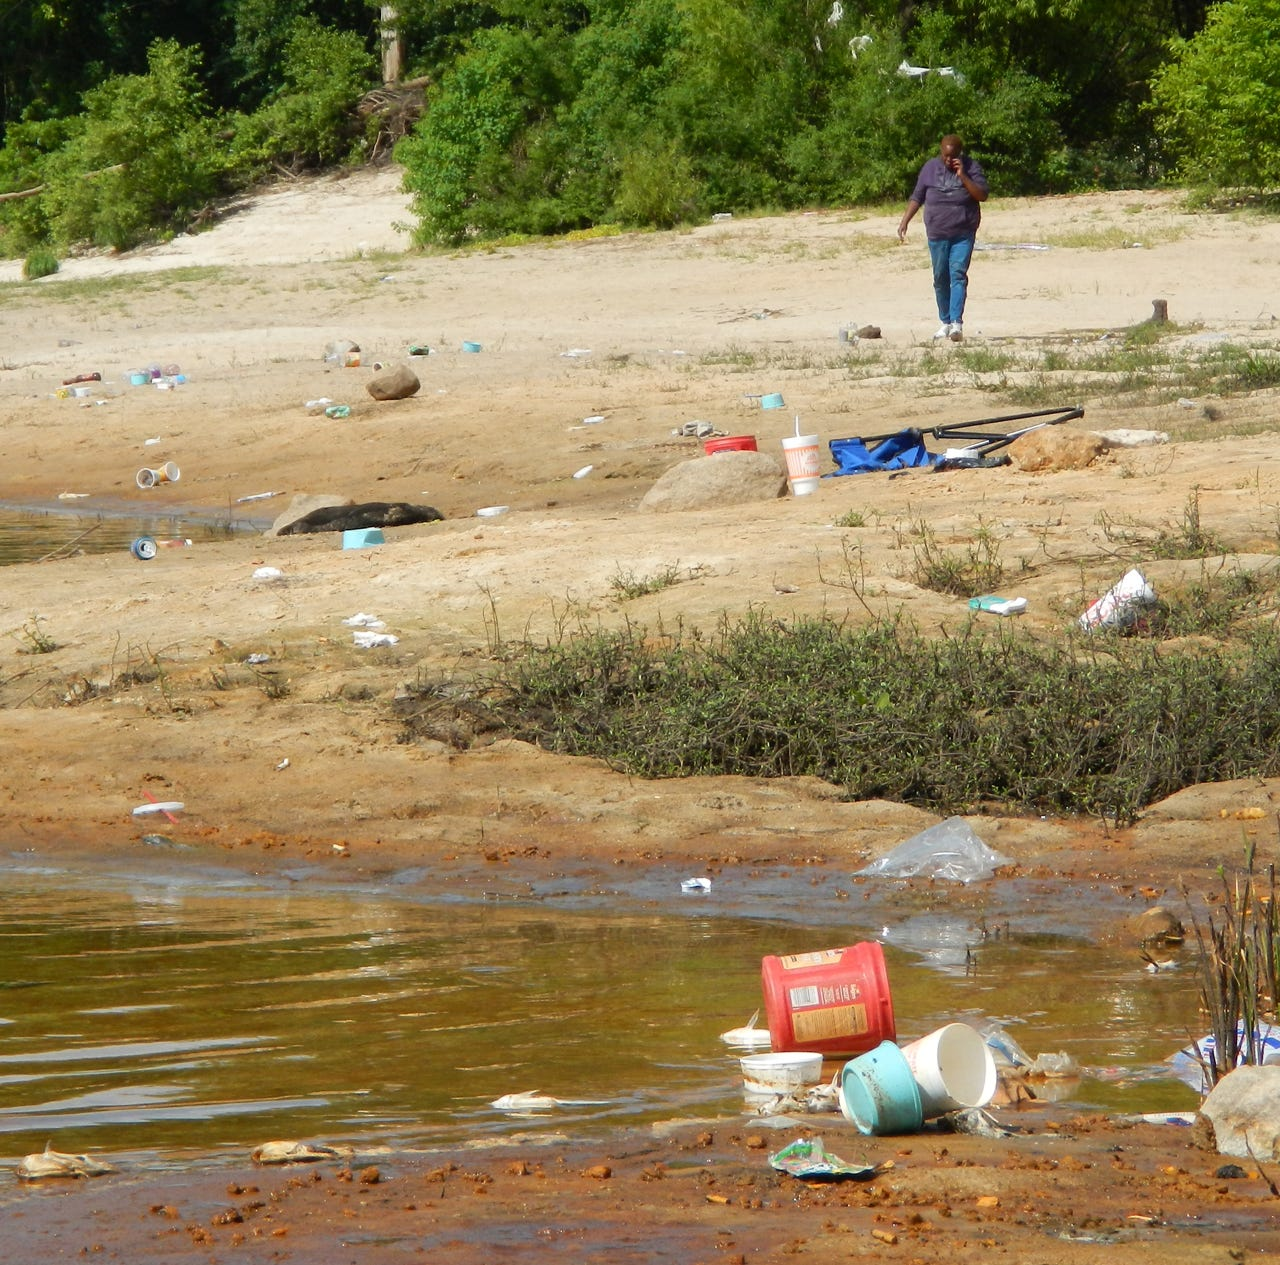 Barnett Reservoir officials have proposed a requirement that fishers on the banks carry trash buckets or face fines.